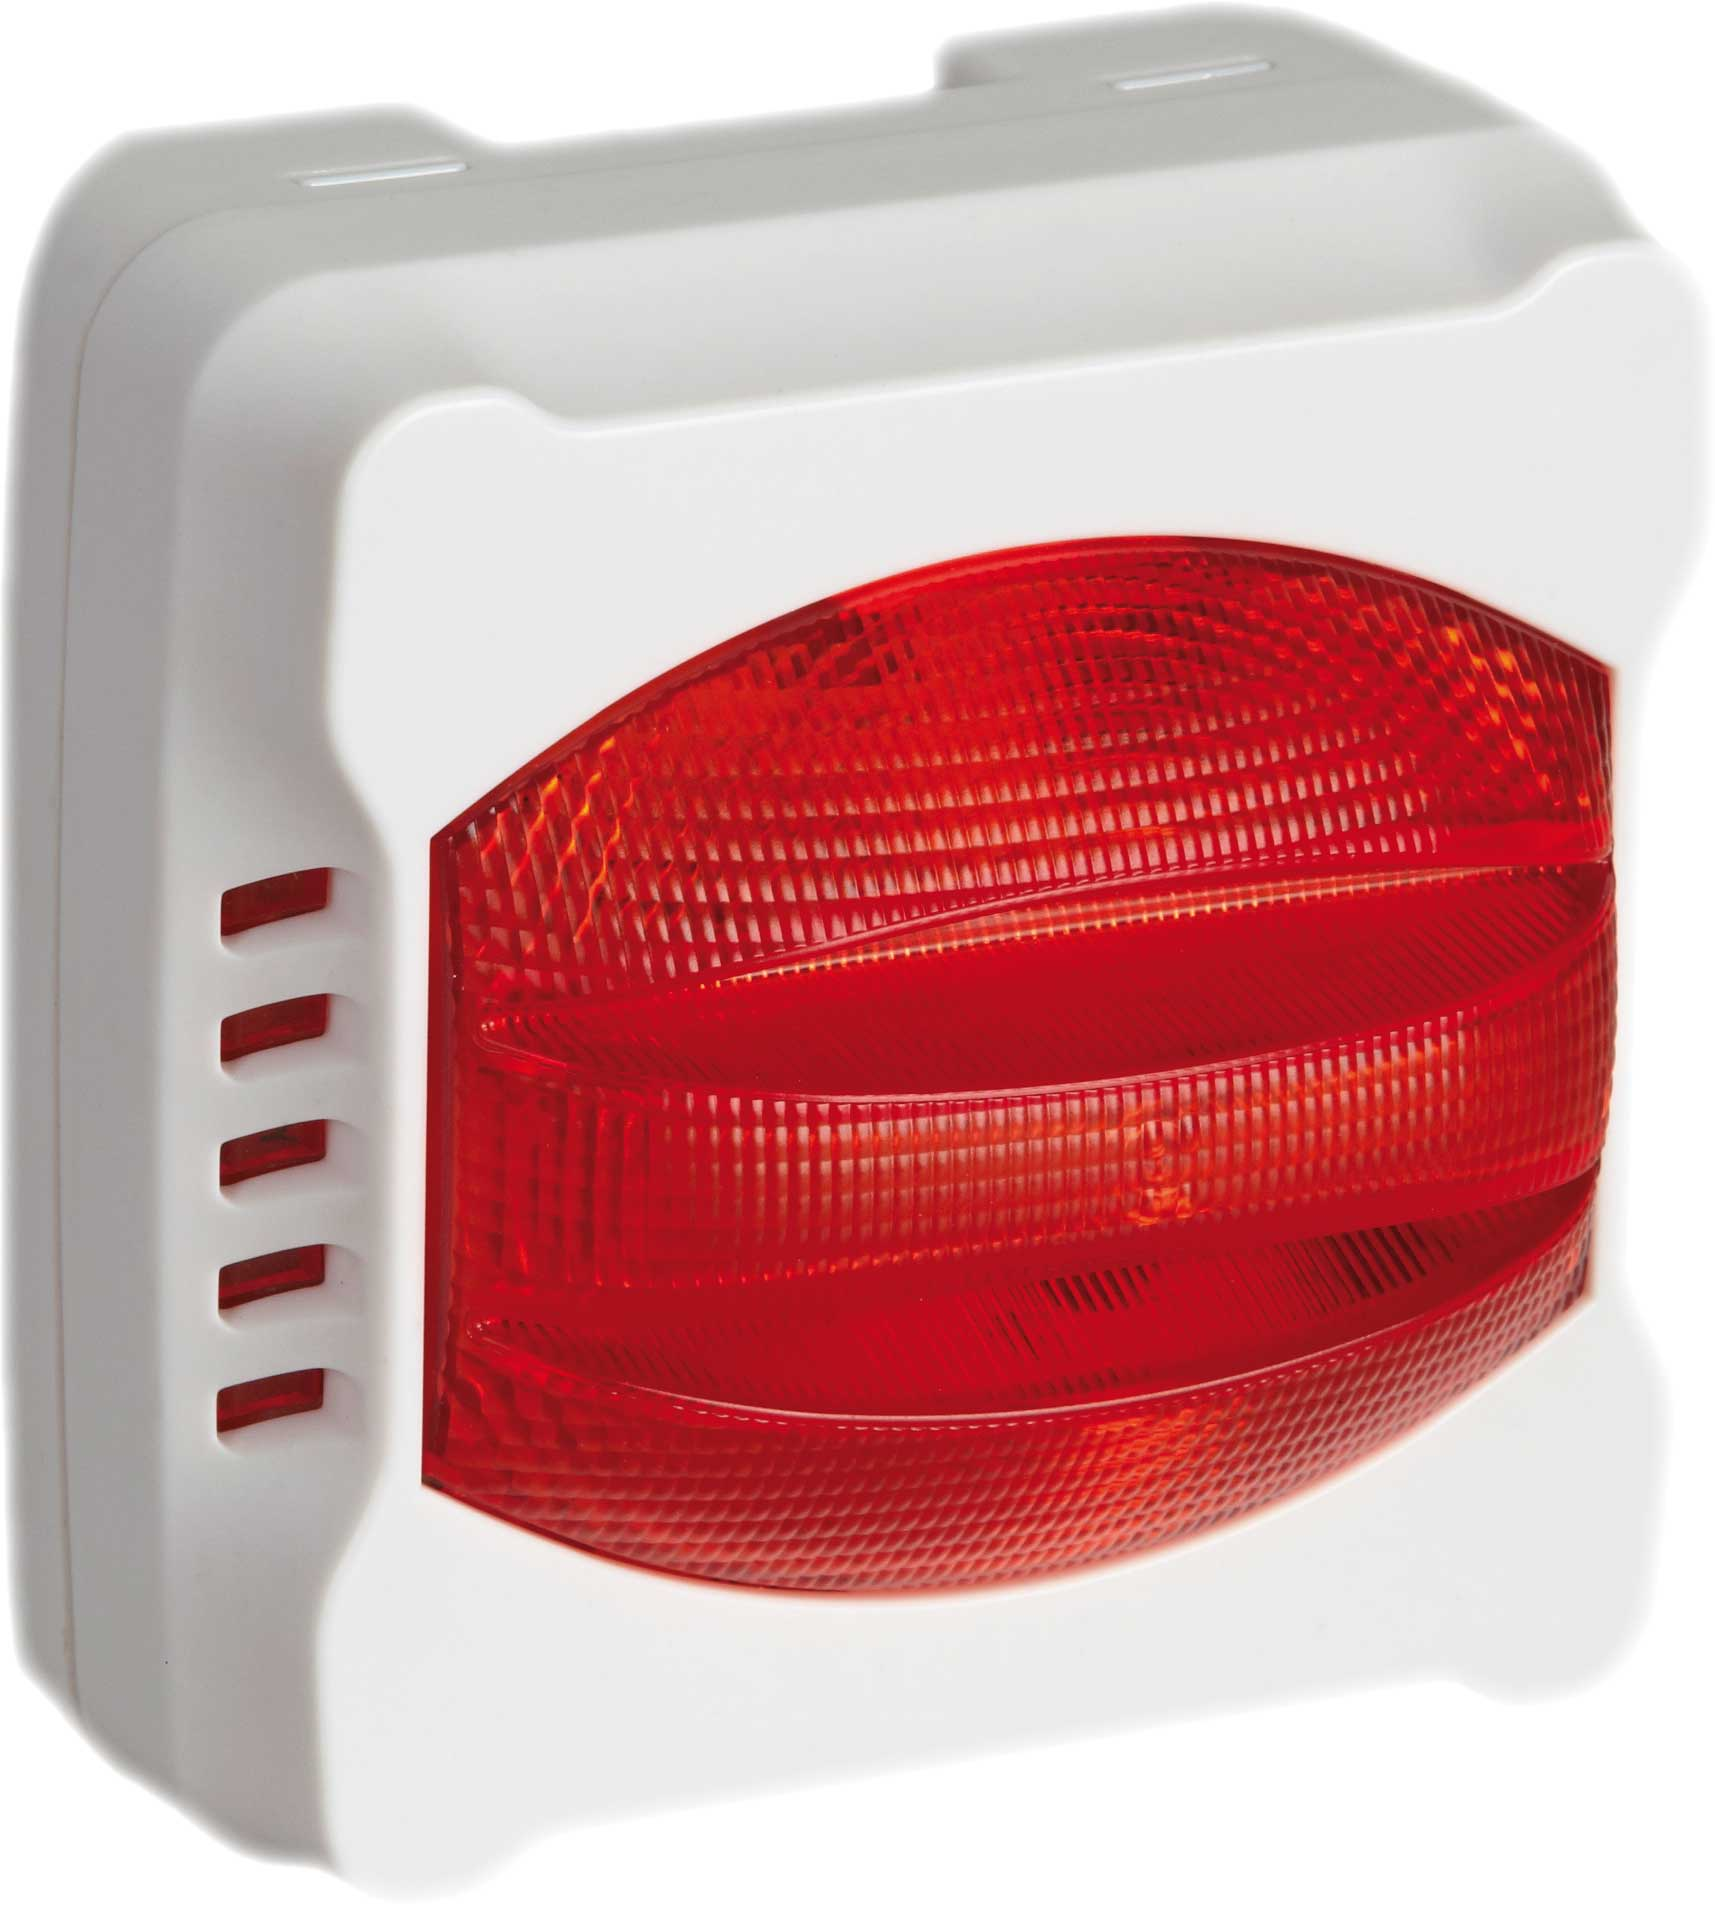 12151 Diffuseur lumineux rouge